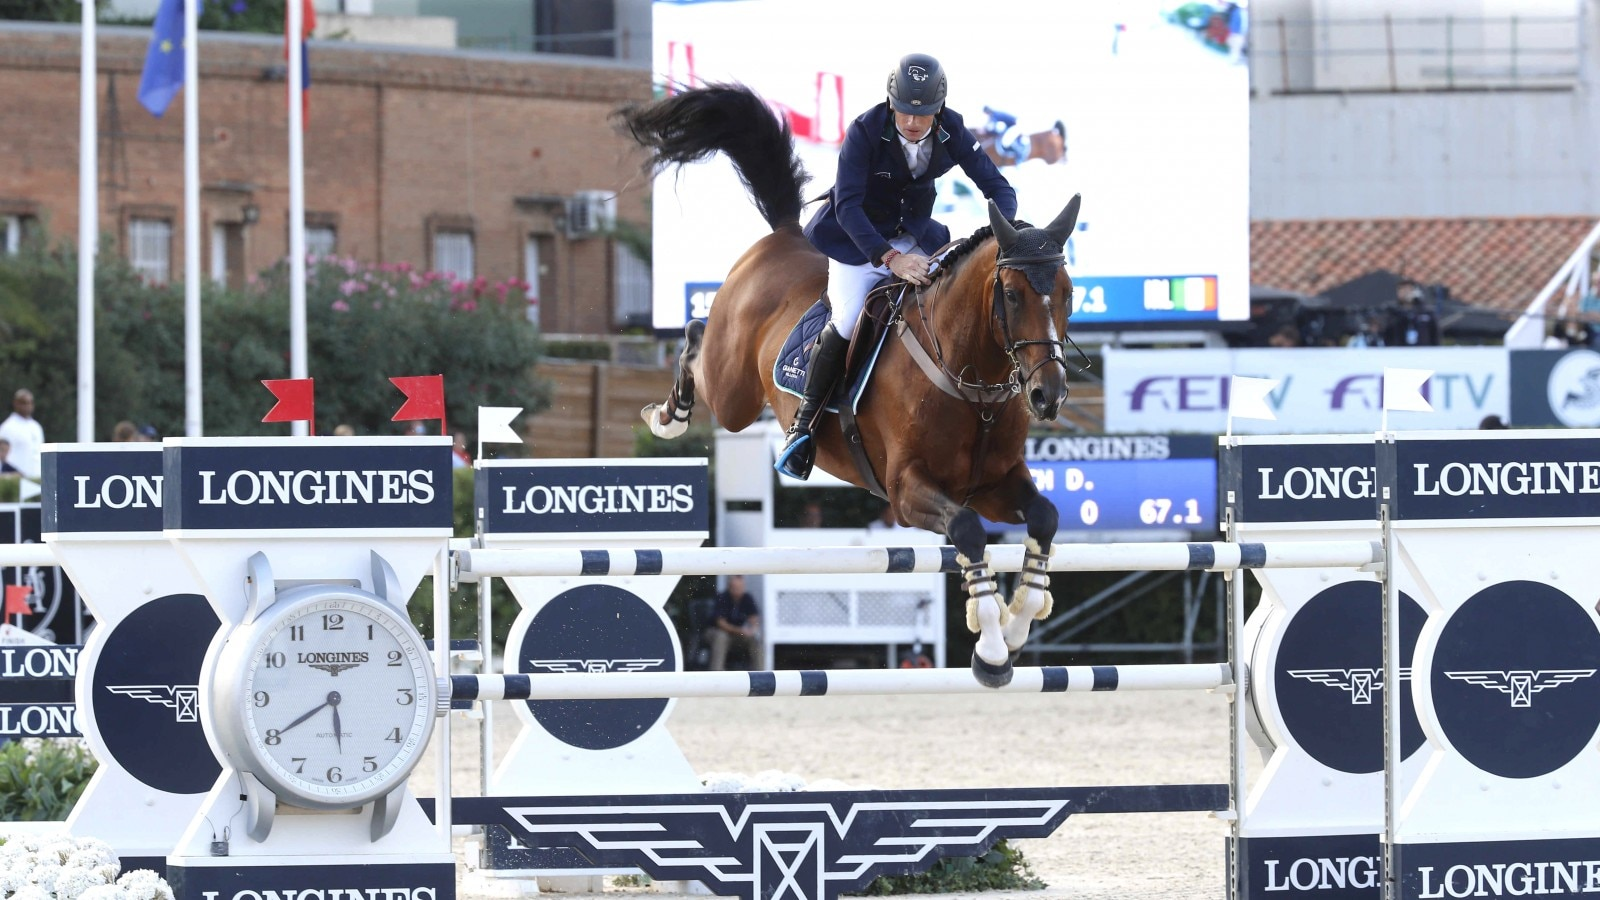 Longines Cup of the City of Barcelona at the CSIO Barcelona 2015